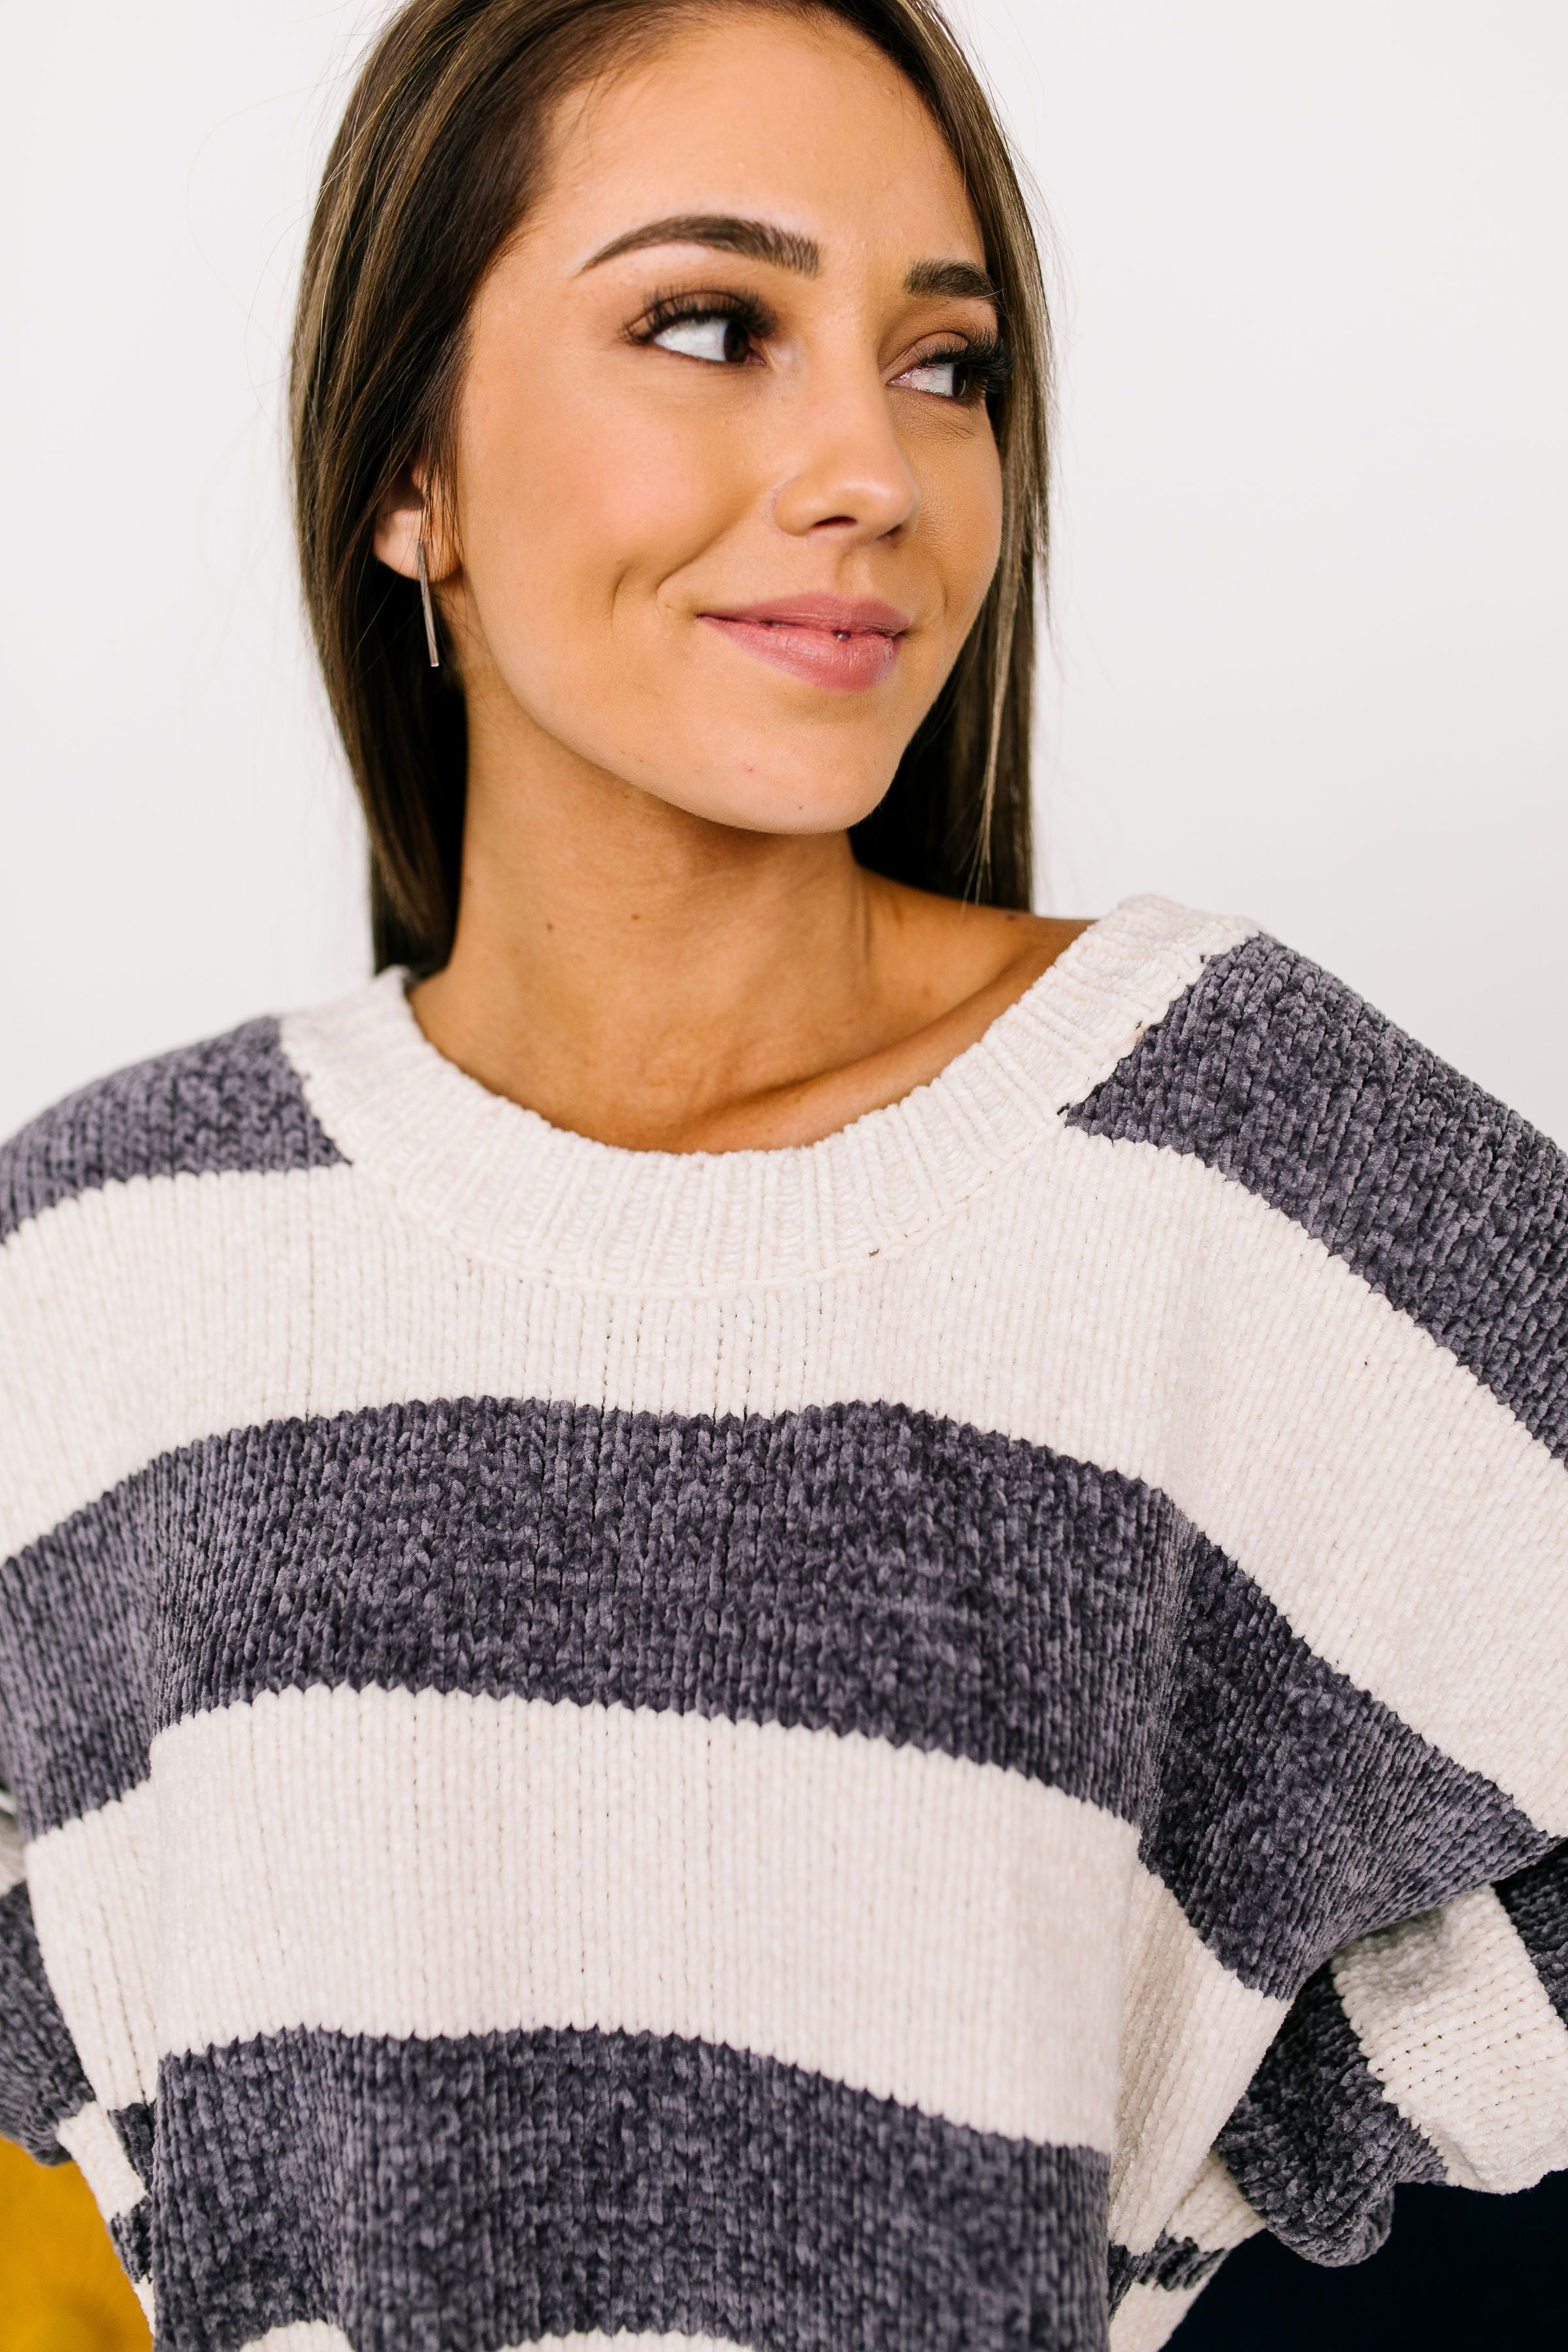 Flashback Friday Night Striped Sweater In Charcoal - ALL SALES FINAL